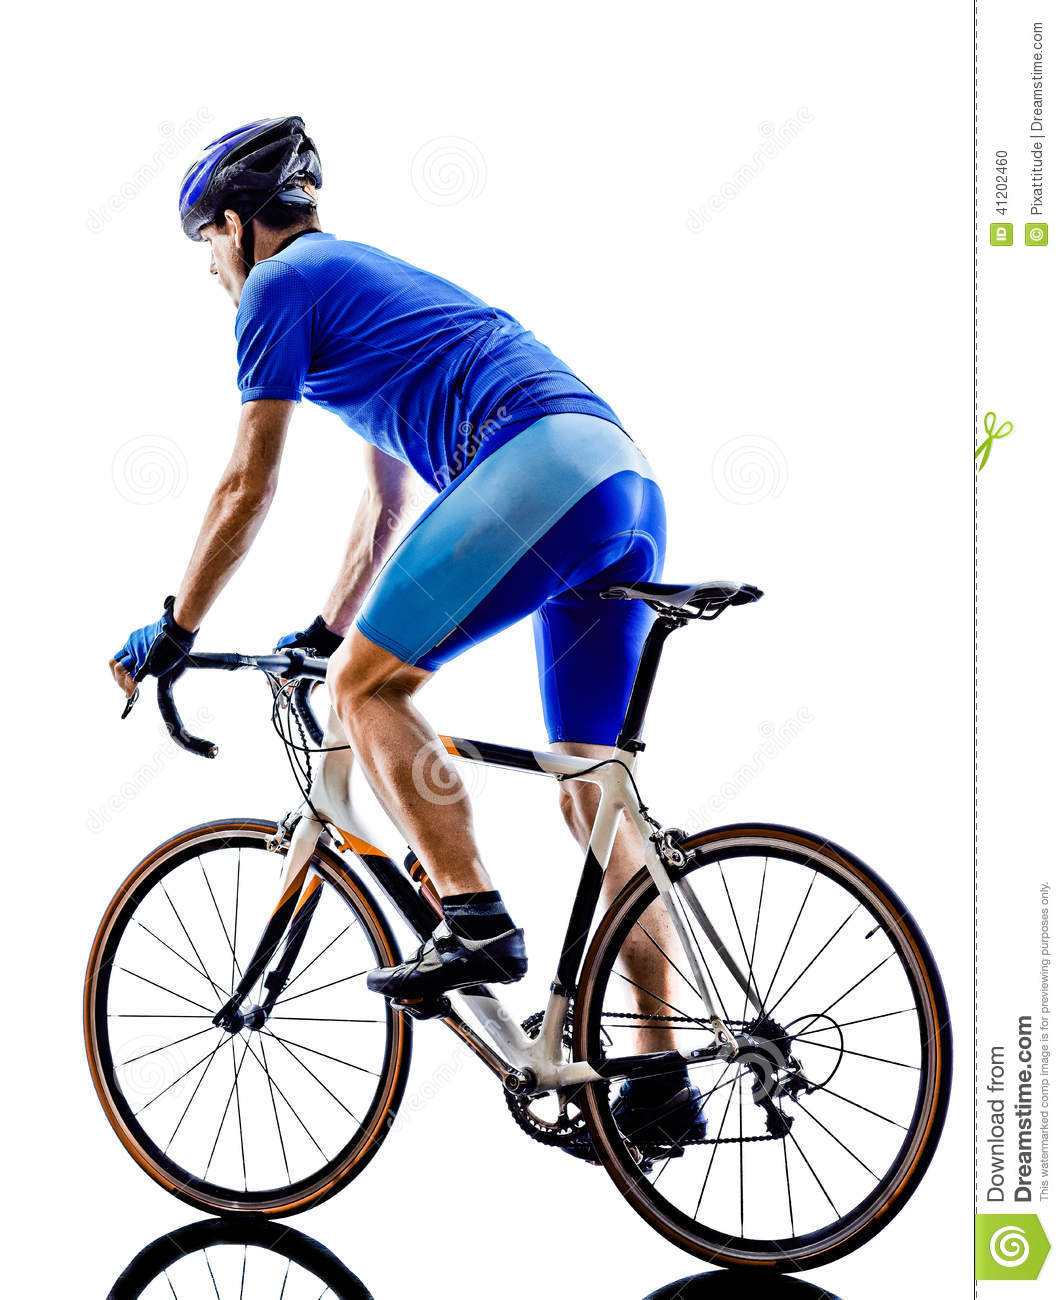 Cyclist cycling road bicycle rear view silhouette